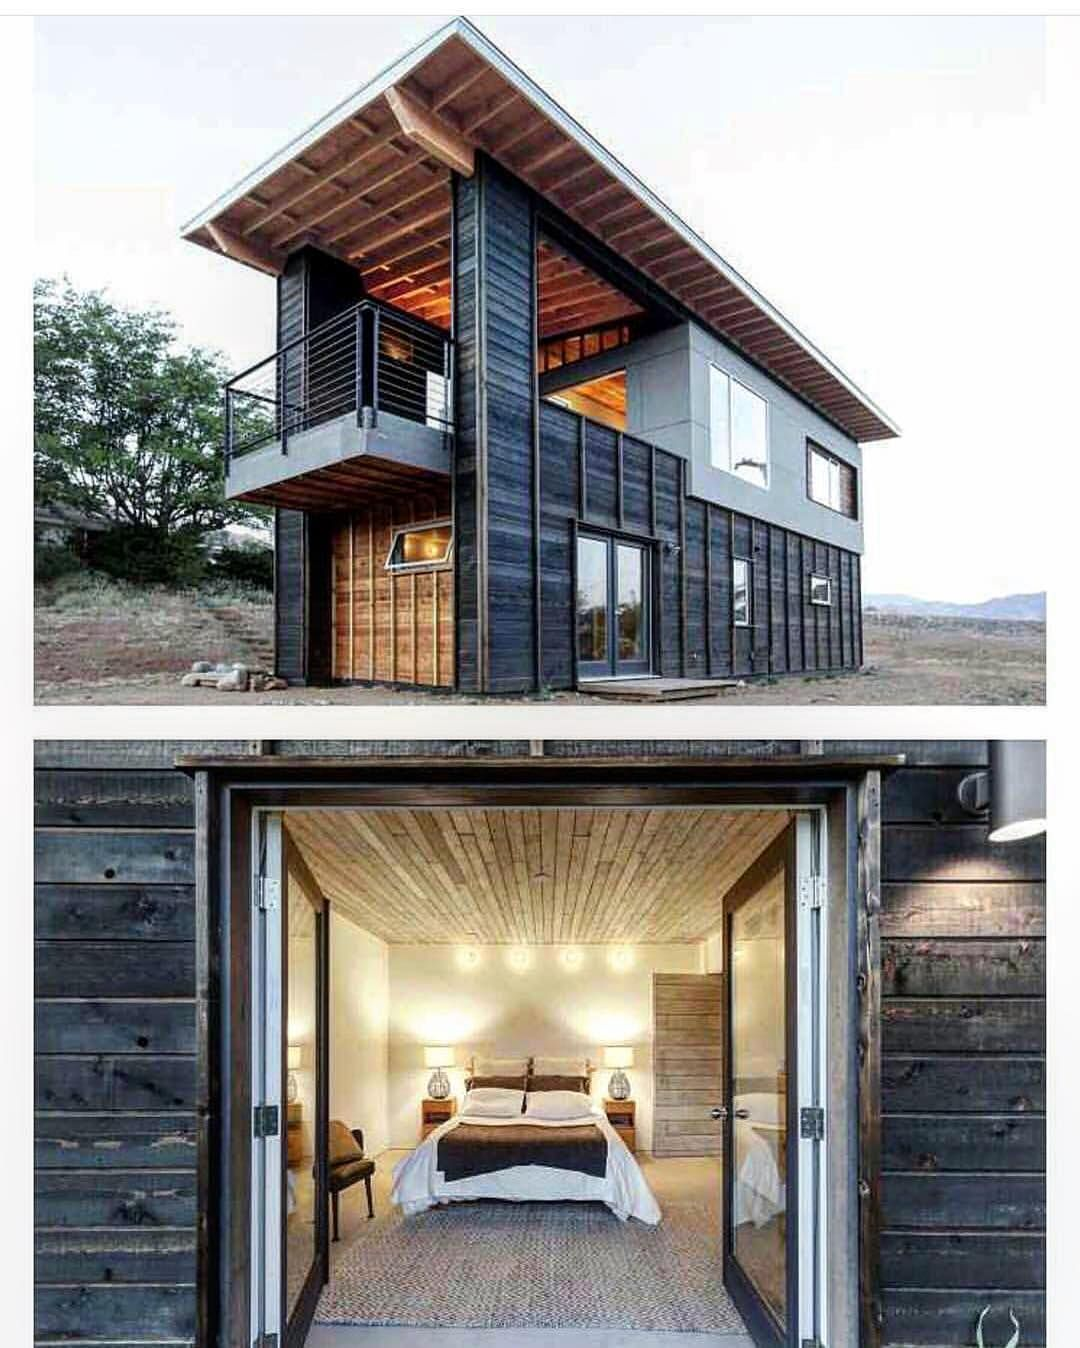 062g 0081 2 car garage apartment plan with modern style 2 car